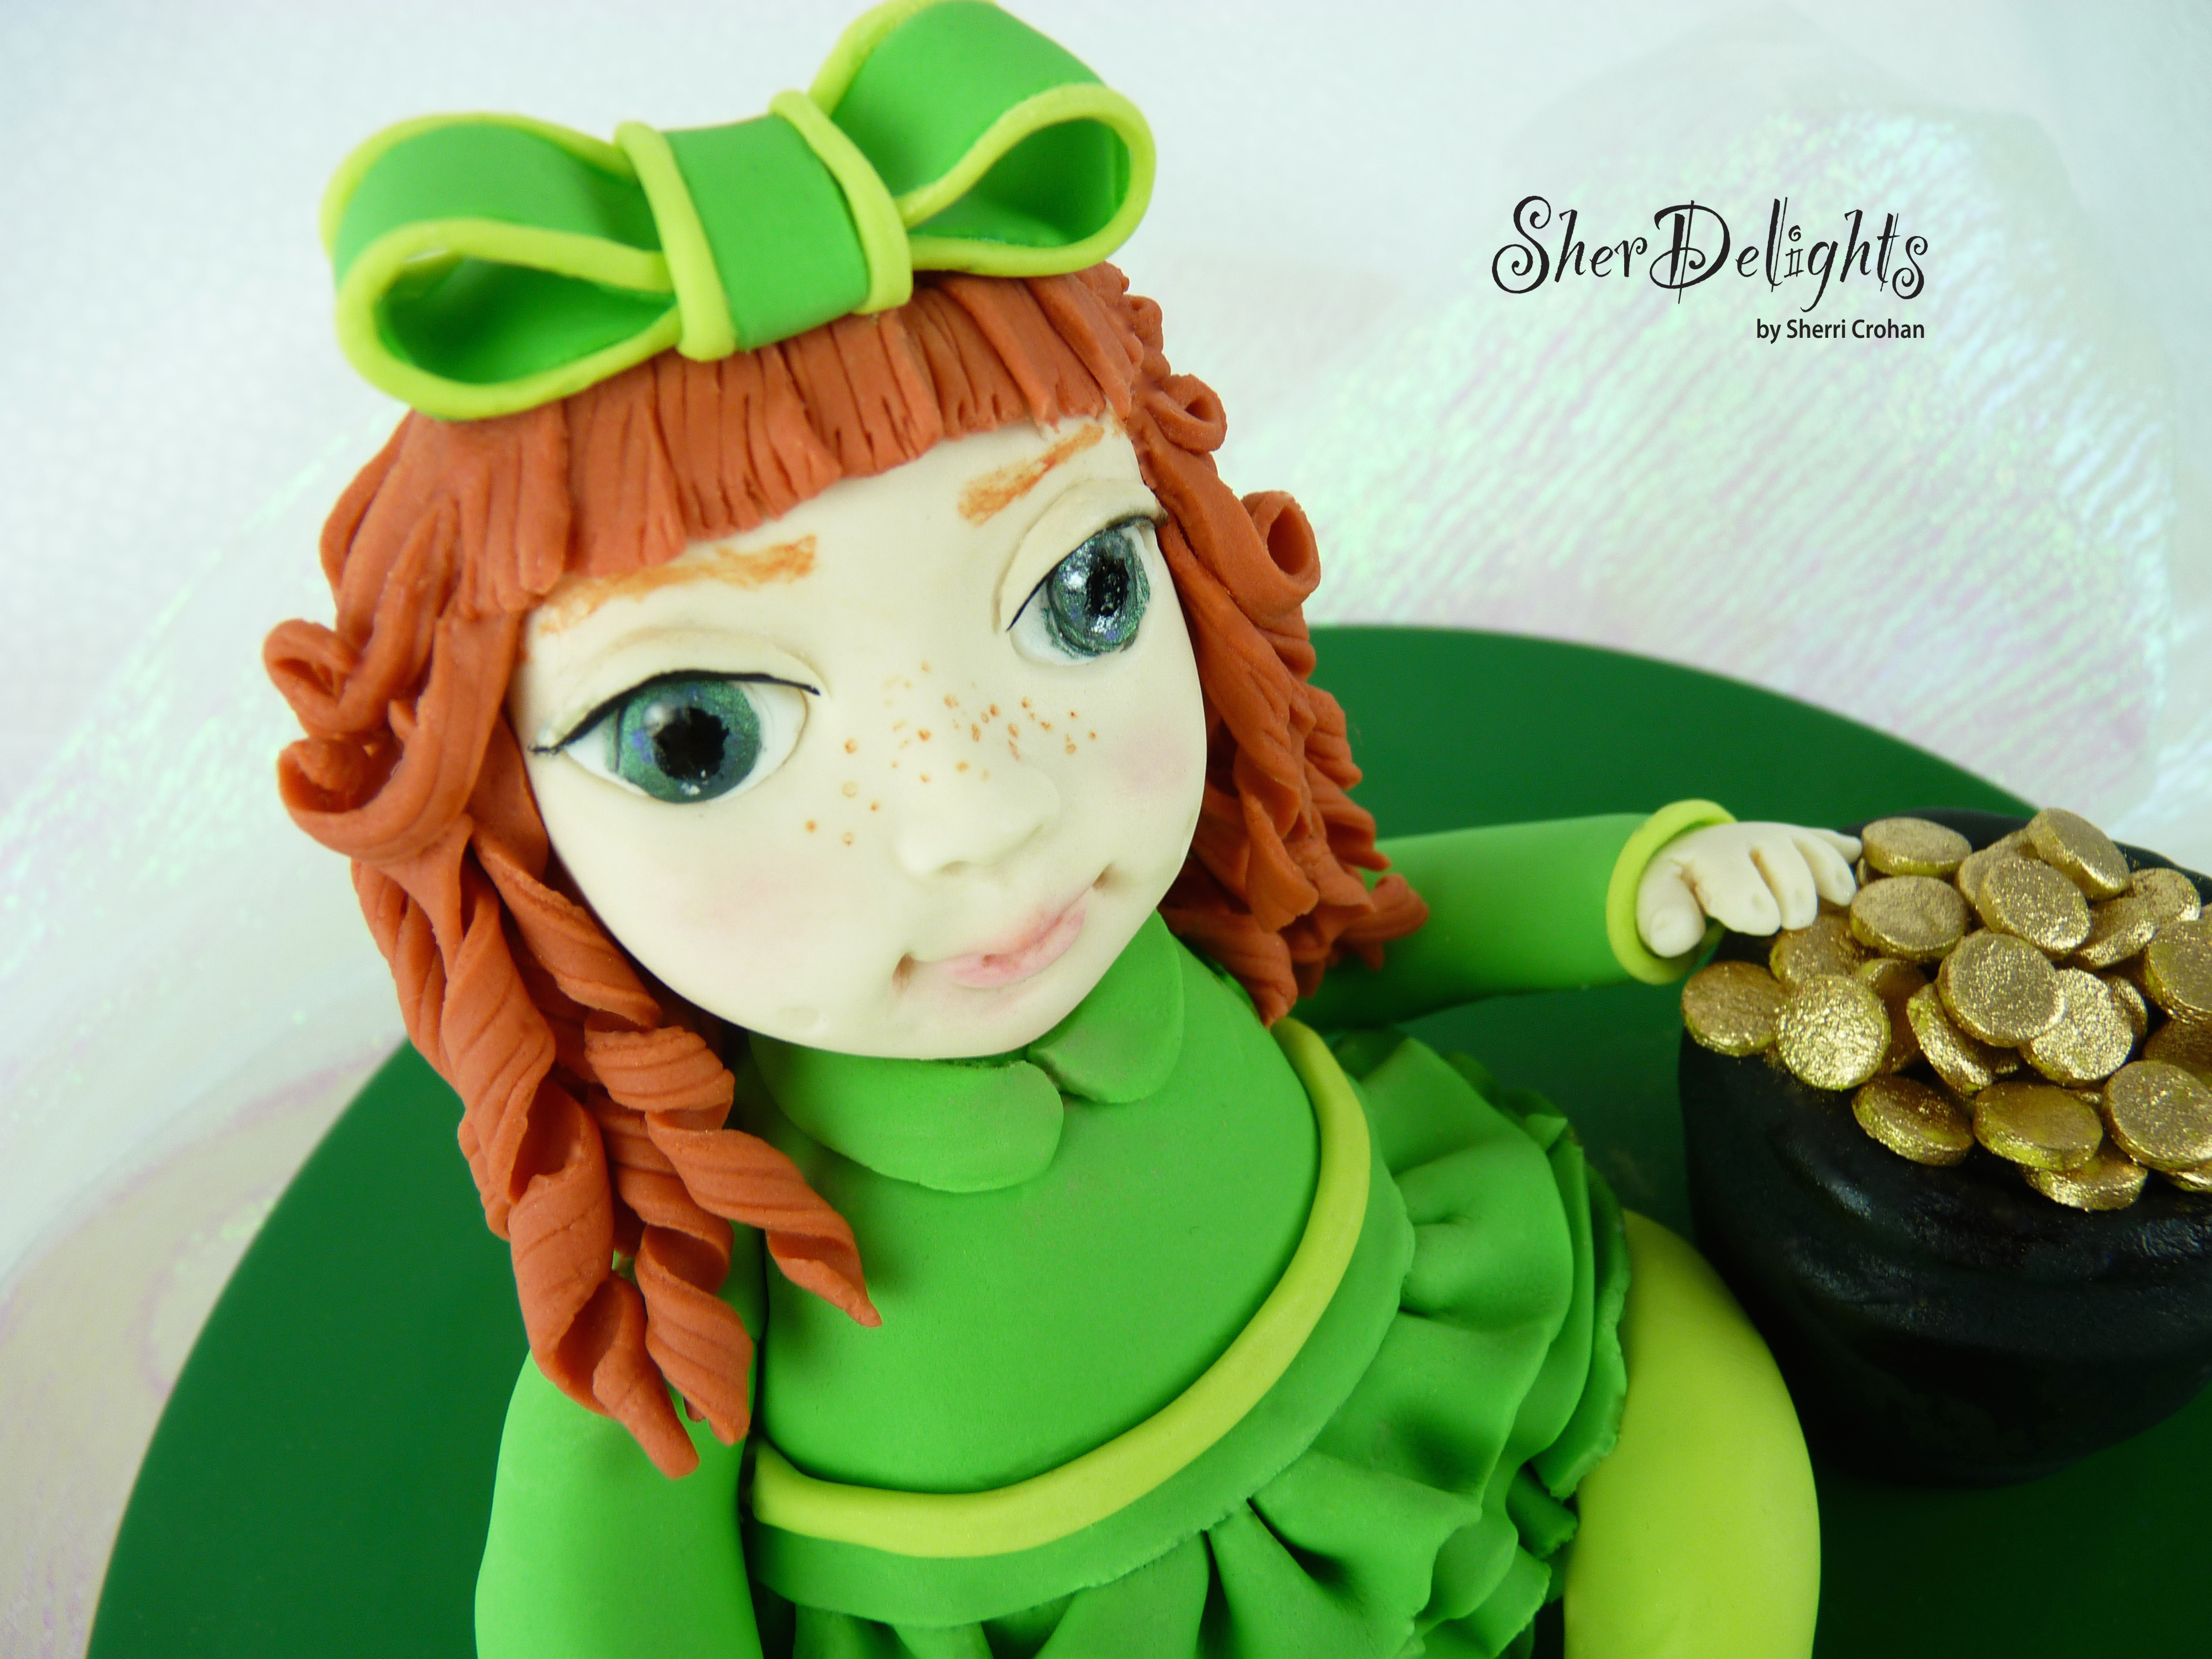 Irish girl figurine